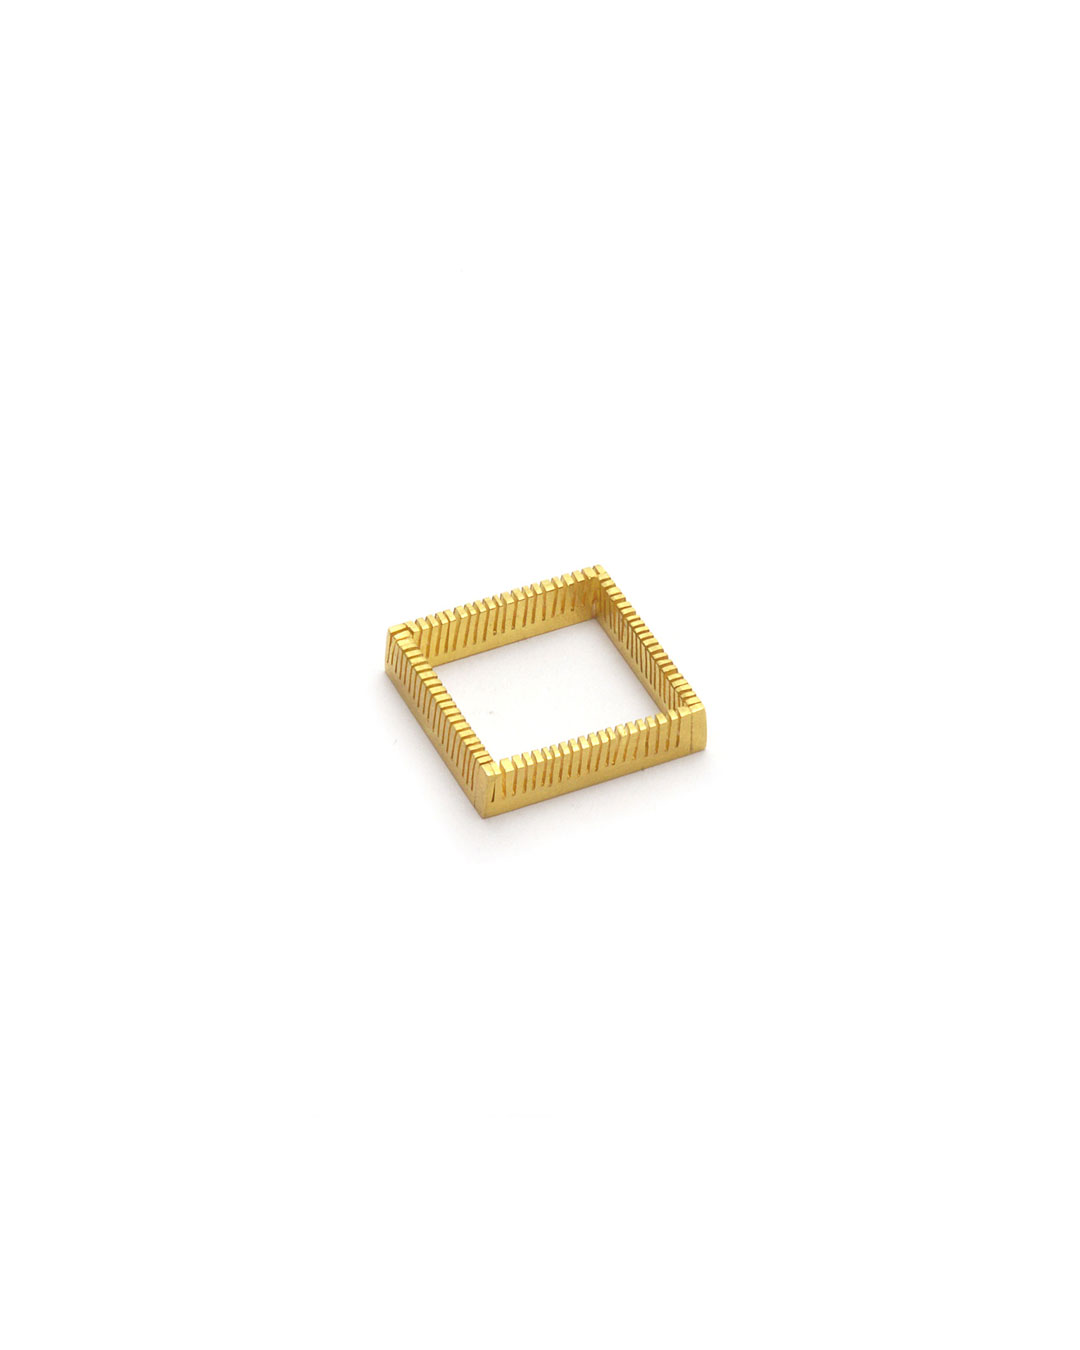 Stefano Marchetti, untitled, 2014, ring; gold, 22 x 22 x 4 mm, €3000